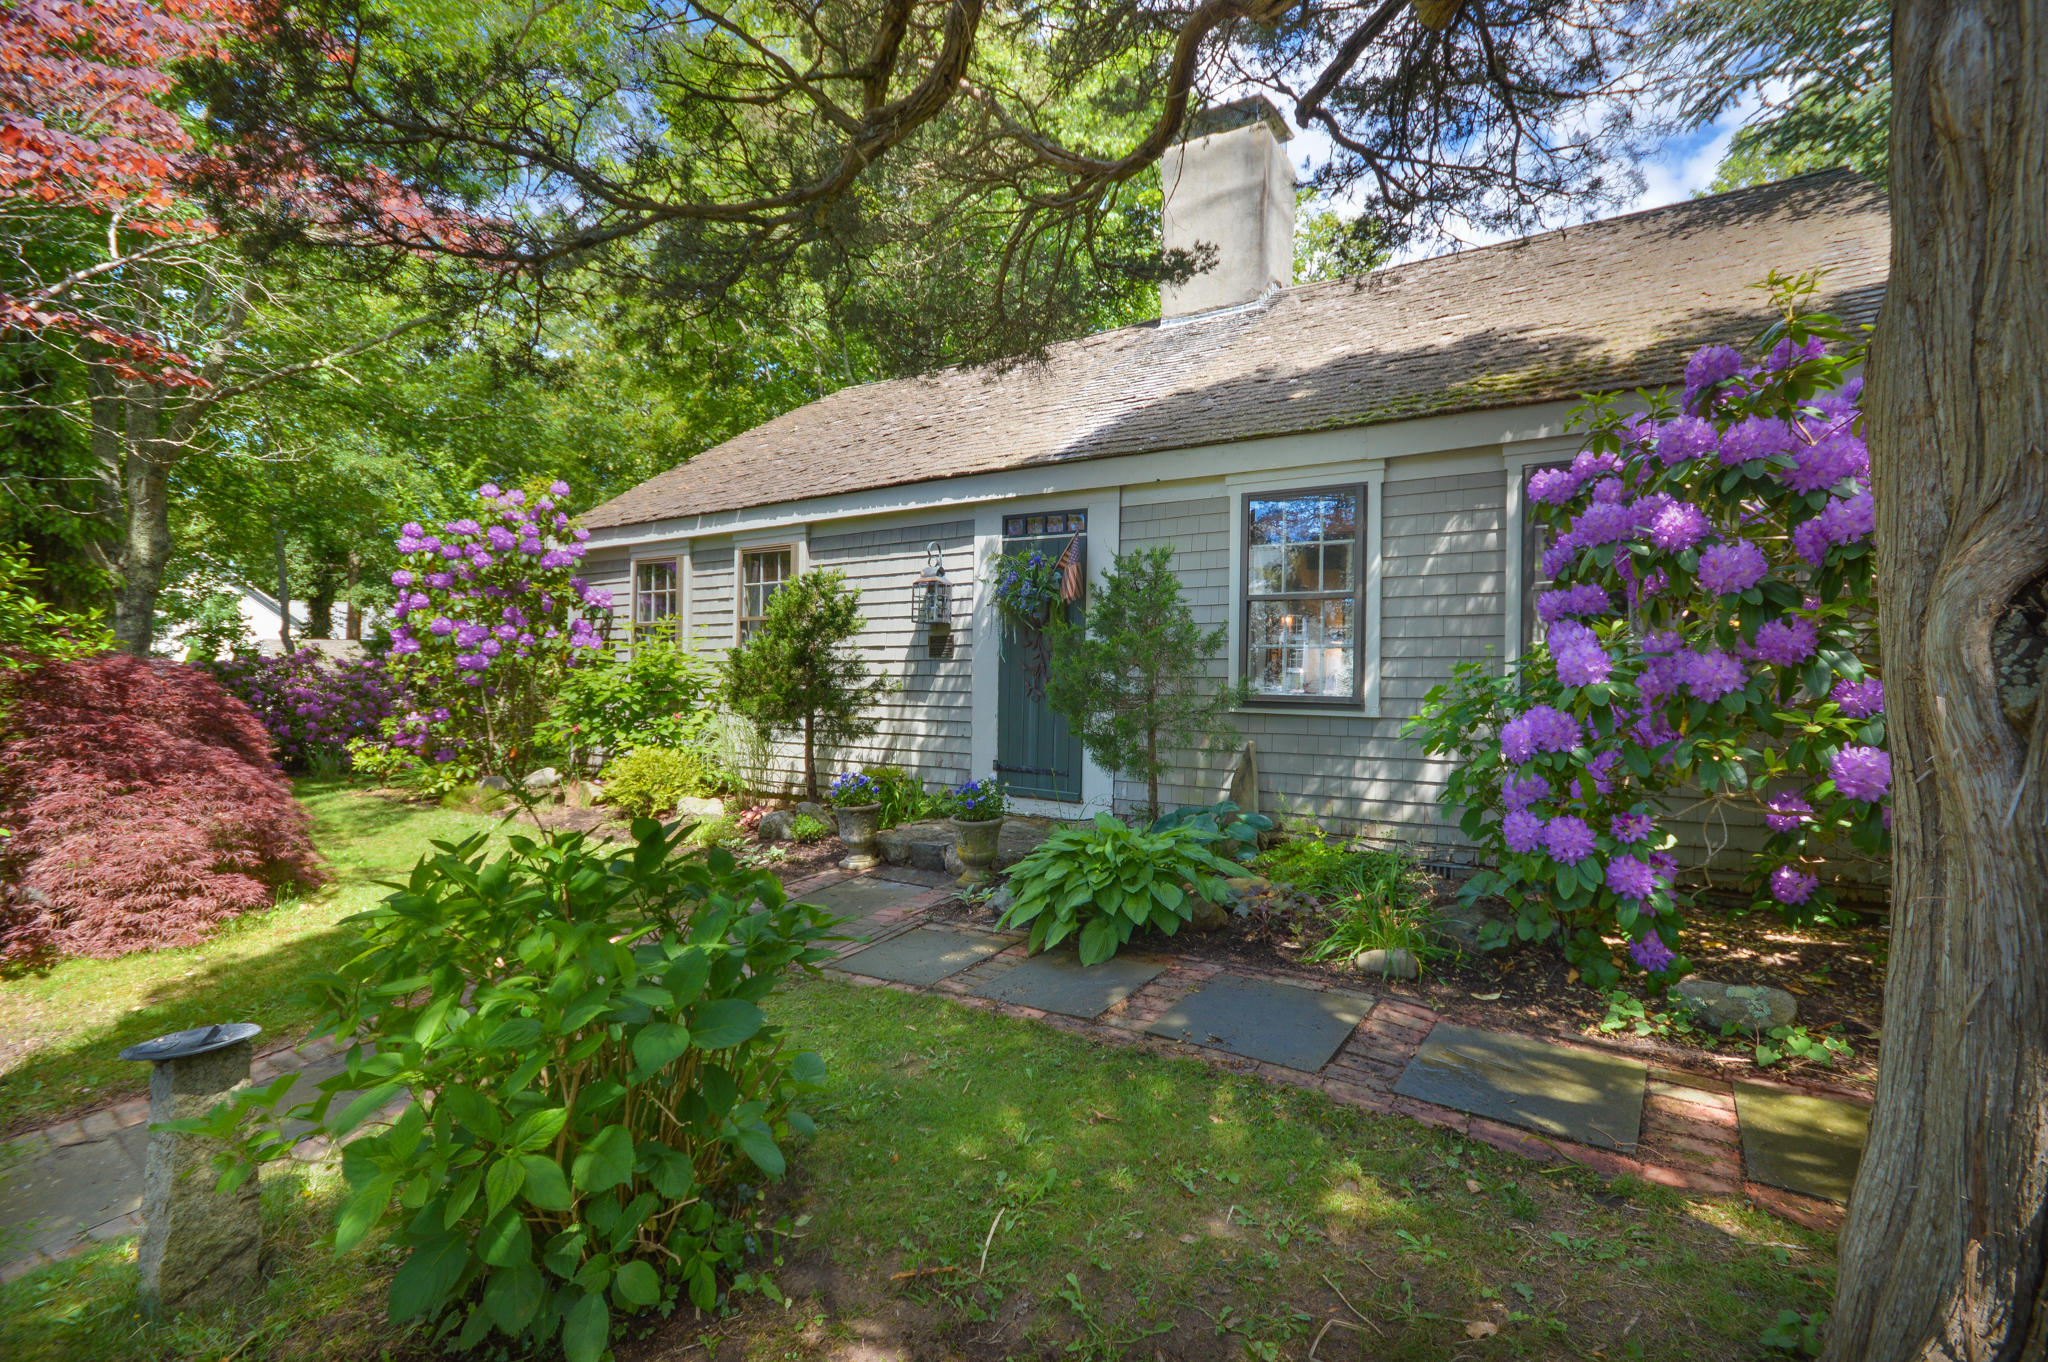 162 Route 6A Yarmouth Port MA, 02675 details